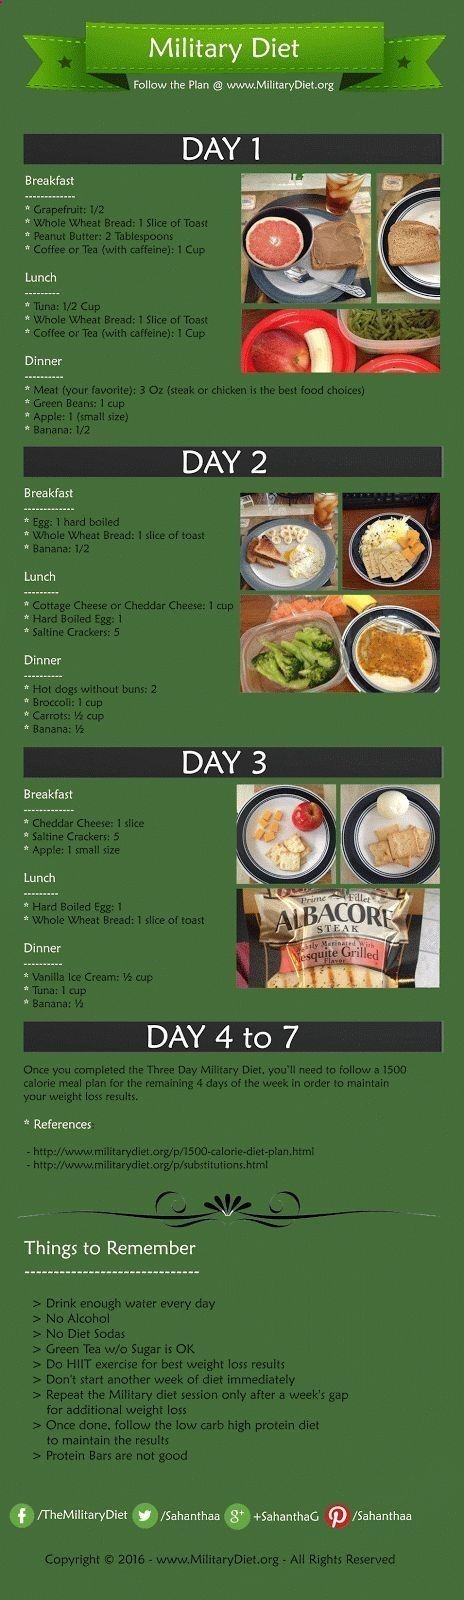 41 best Health images on Pinterest Healthy eats, Get skinny and - biggest loser weight loss calculator spreadsheet